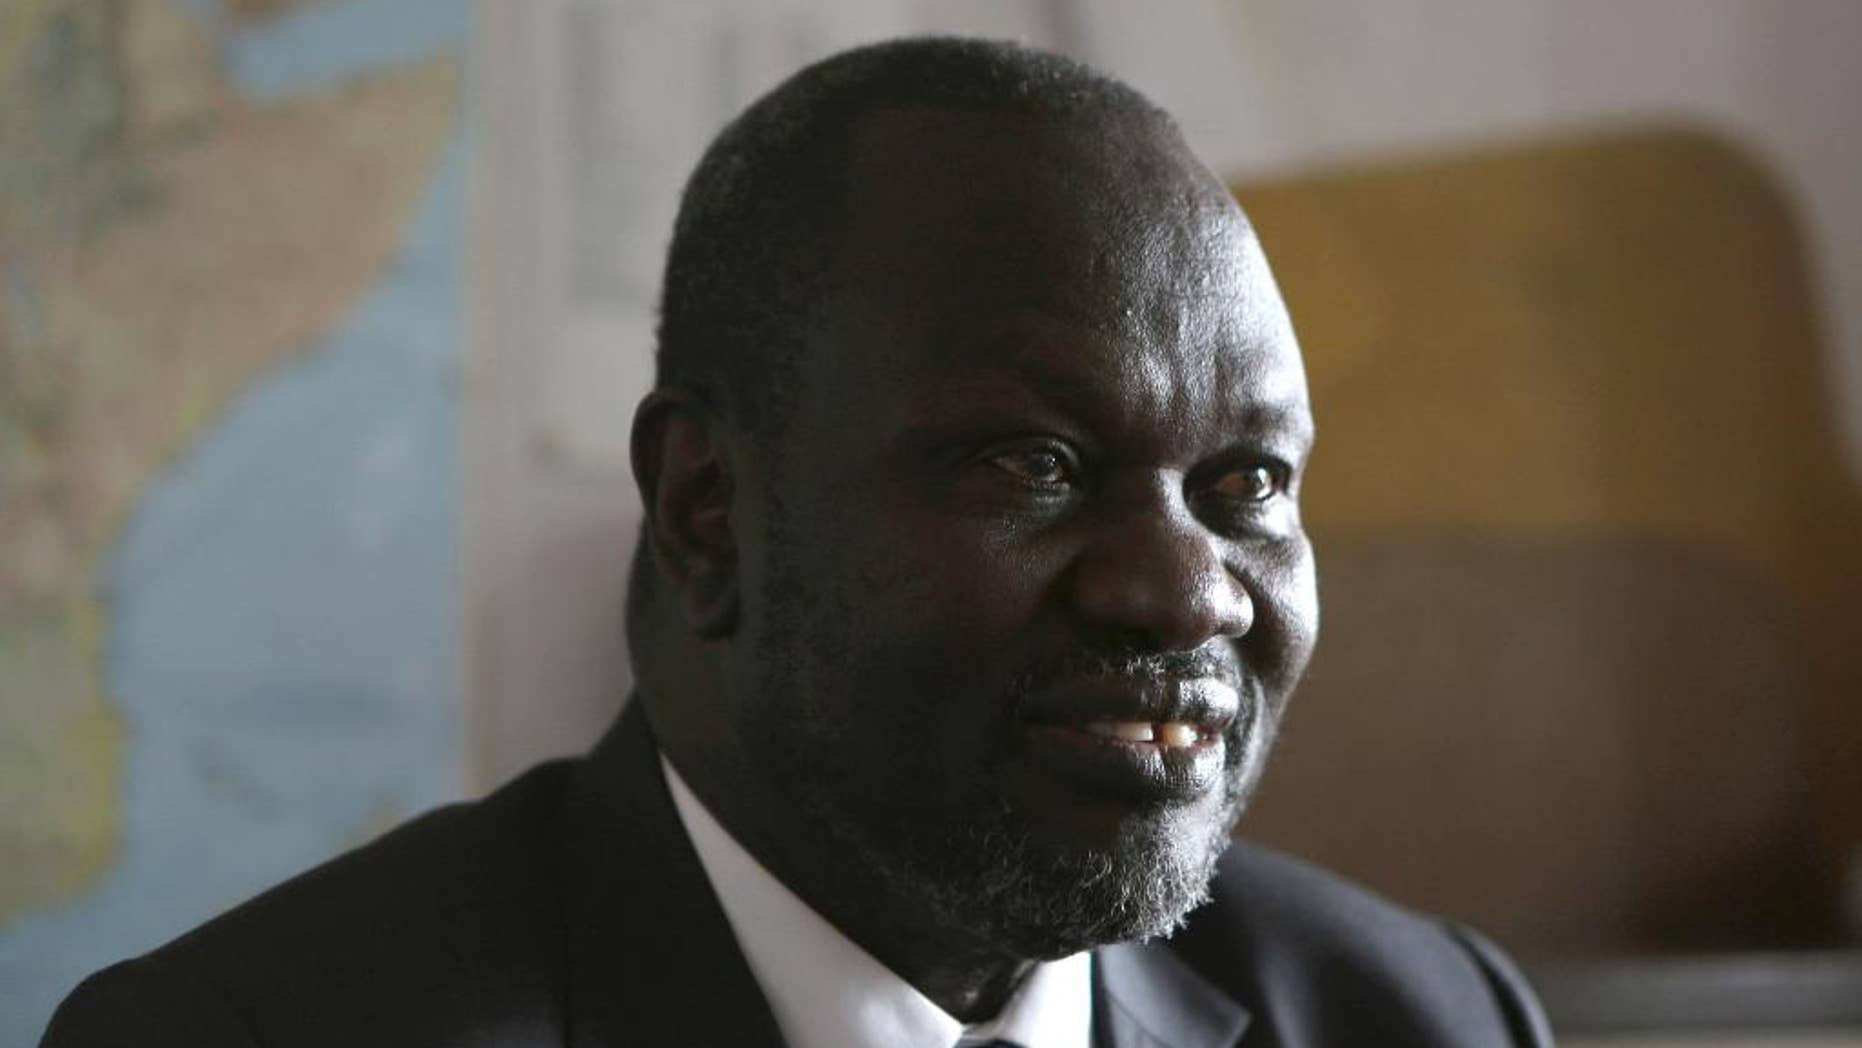 FILE - In this Thursday, Oct. 20, 2016 file photo, South Sudan rebel leader Riek Machar speaks in an interview with The Associated Press in Johannesburg. Riek Machar told The Associated Press in a phone interview on Saturday Dec. 17, 2016, he cannot leave his home in South Africa without first informing South African authorities. (AP Photo/Denis Farrell, File)